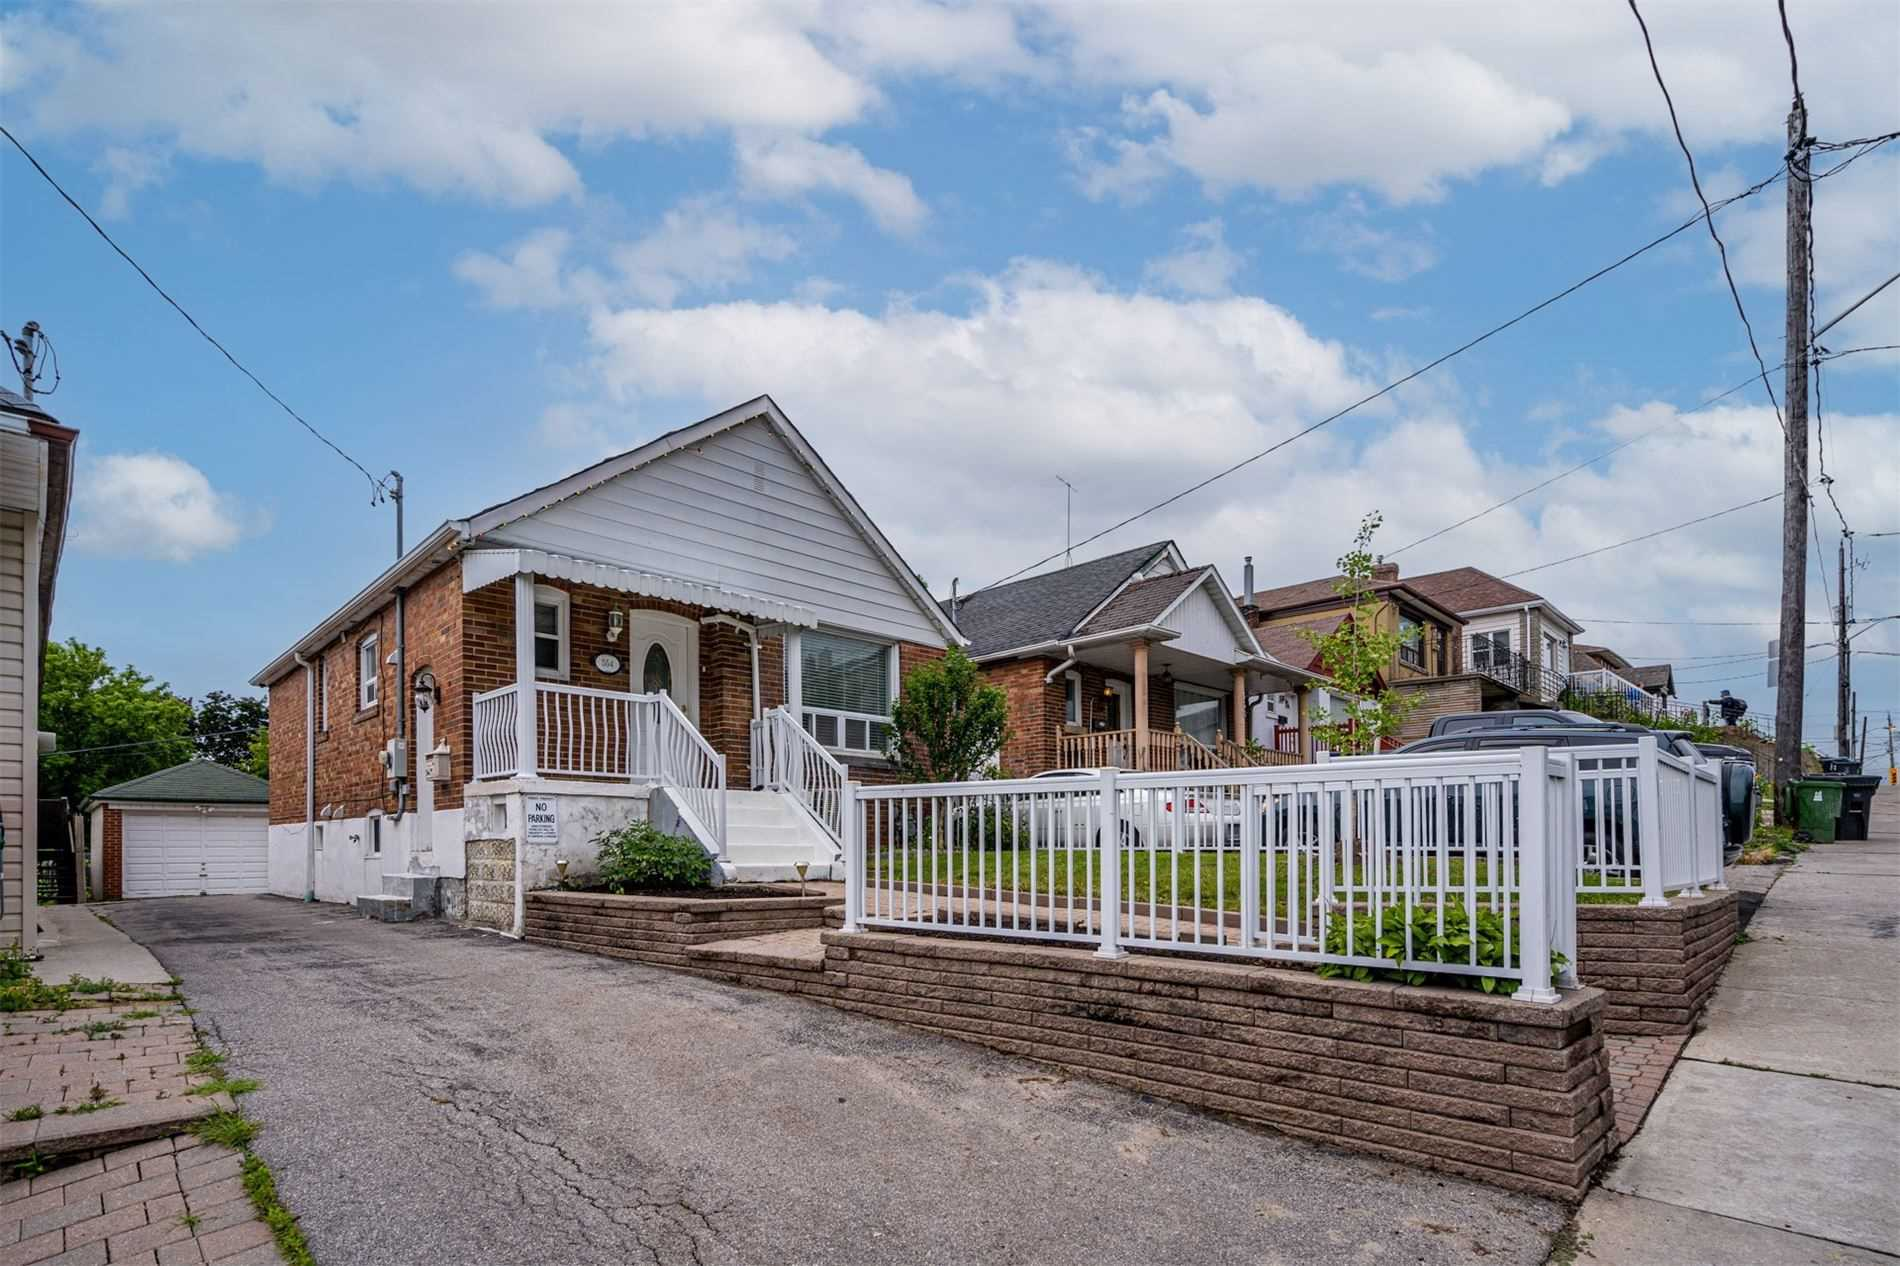 554 Caledonia Rd - Caledonia-Fairbank Detached for sale, 2 Bedrooms (W5305900) - #2